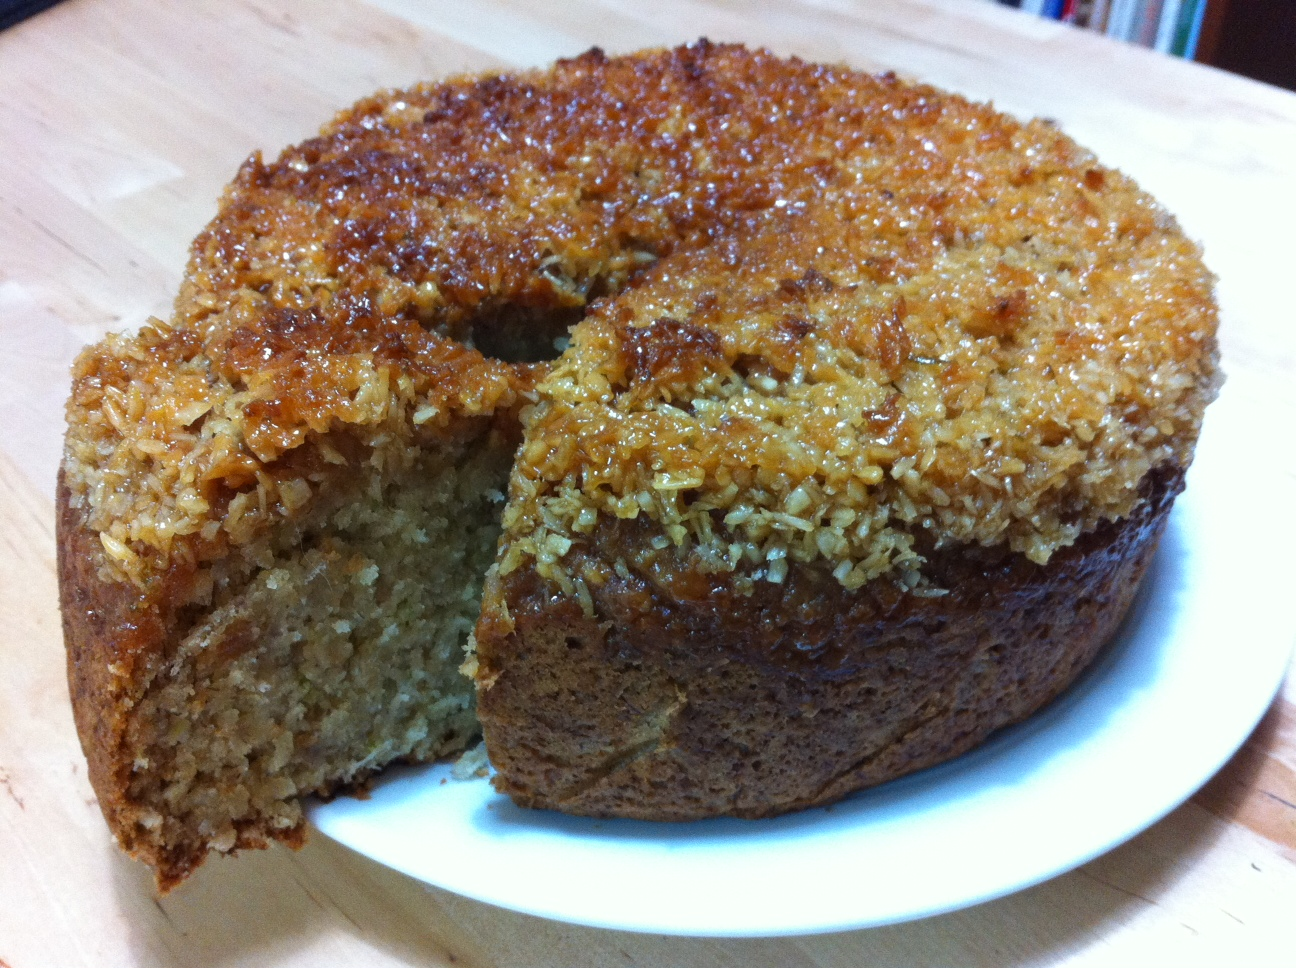 coconut banana and lime cake 2 5 deciliters unsweetened coconut